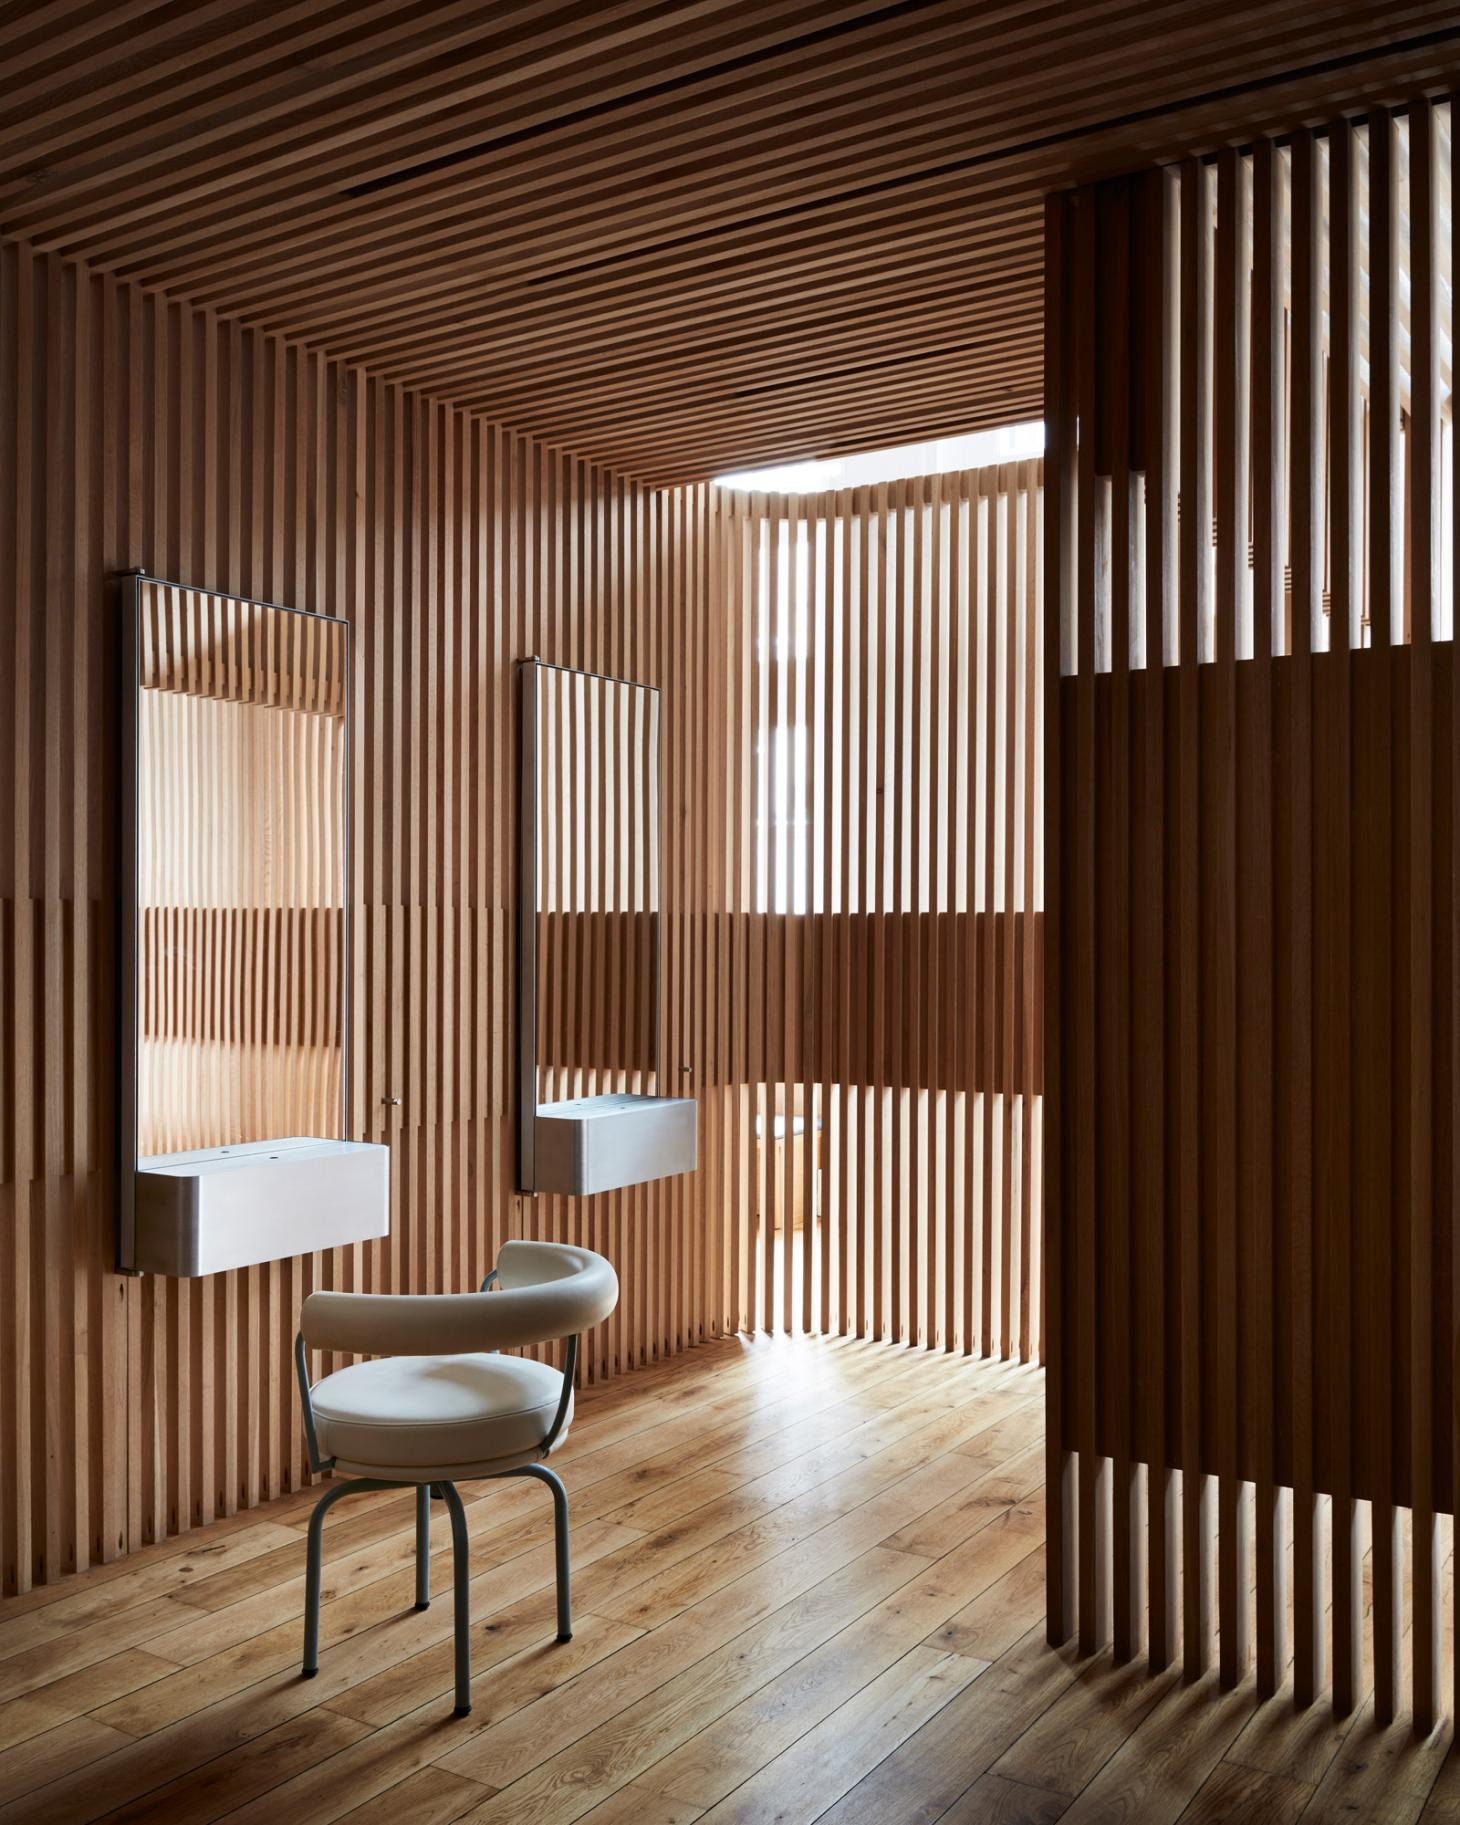 A hair salon interior defined by vertical wood slats with two mirrors and a chair